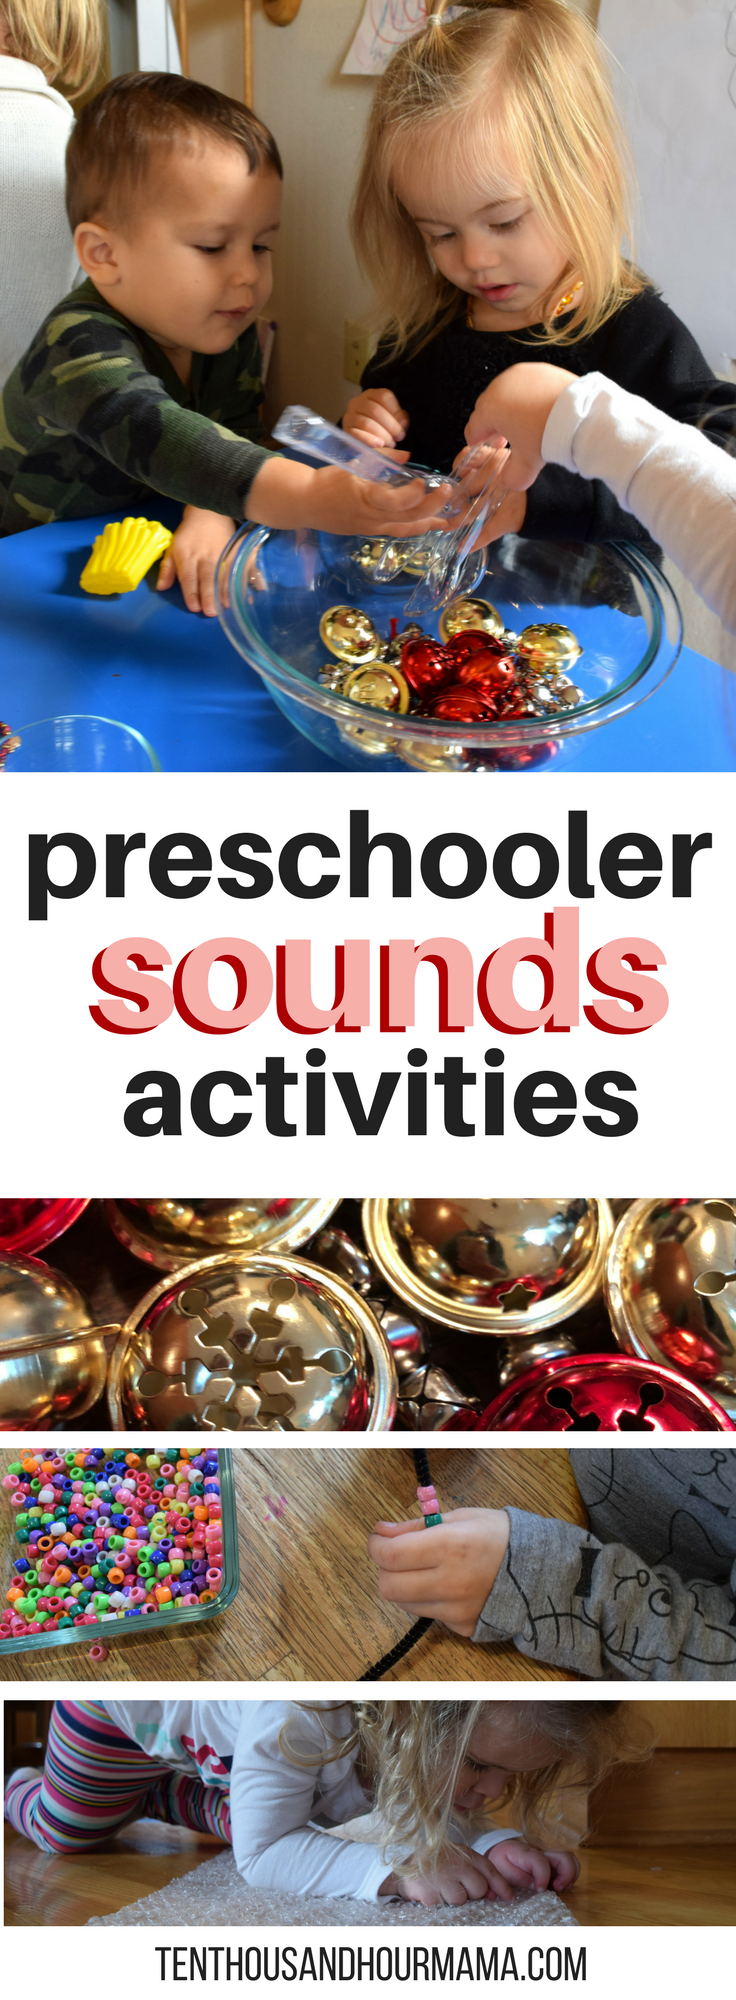 Toddler preschool sounds theme and activities for homeschool - ideas for sensory play. Ten Thousand Hour Mama